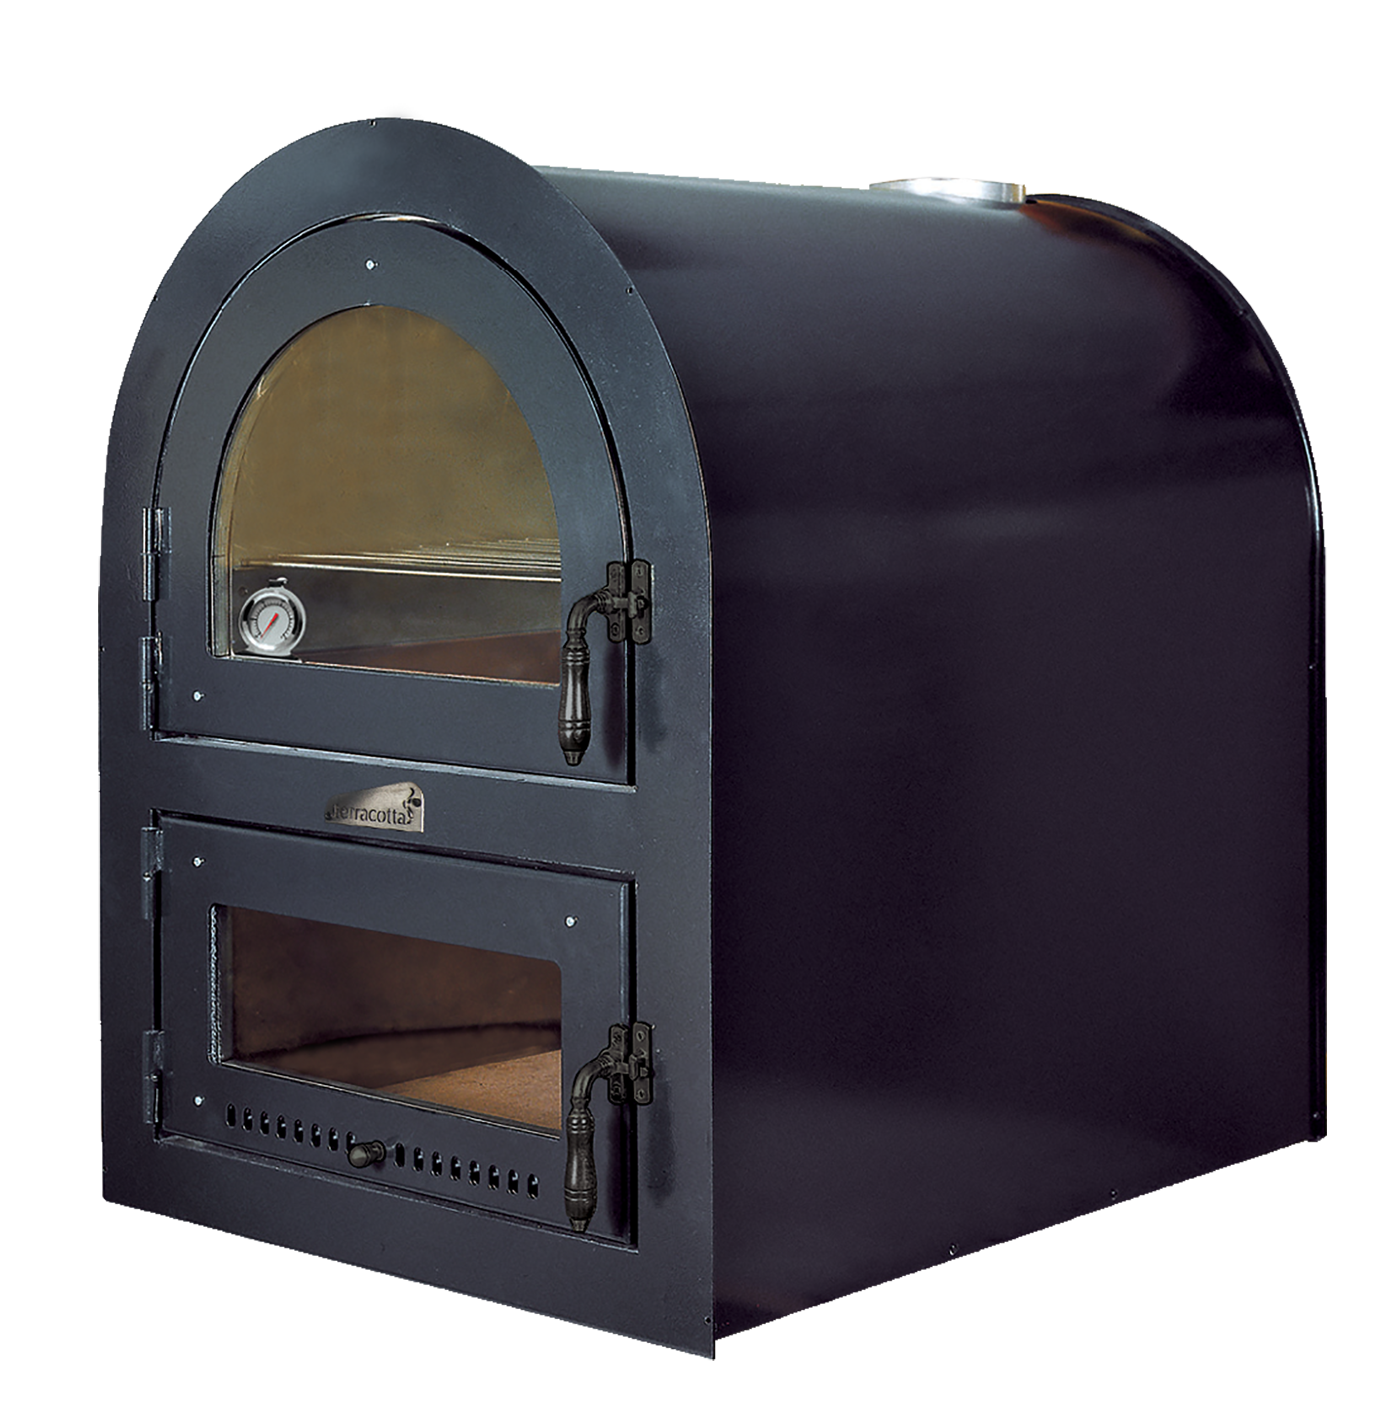 Forno A Legna Immagini ready-to-use double wood oven certified for the preparation of food